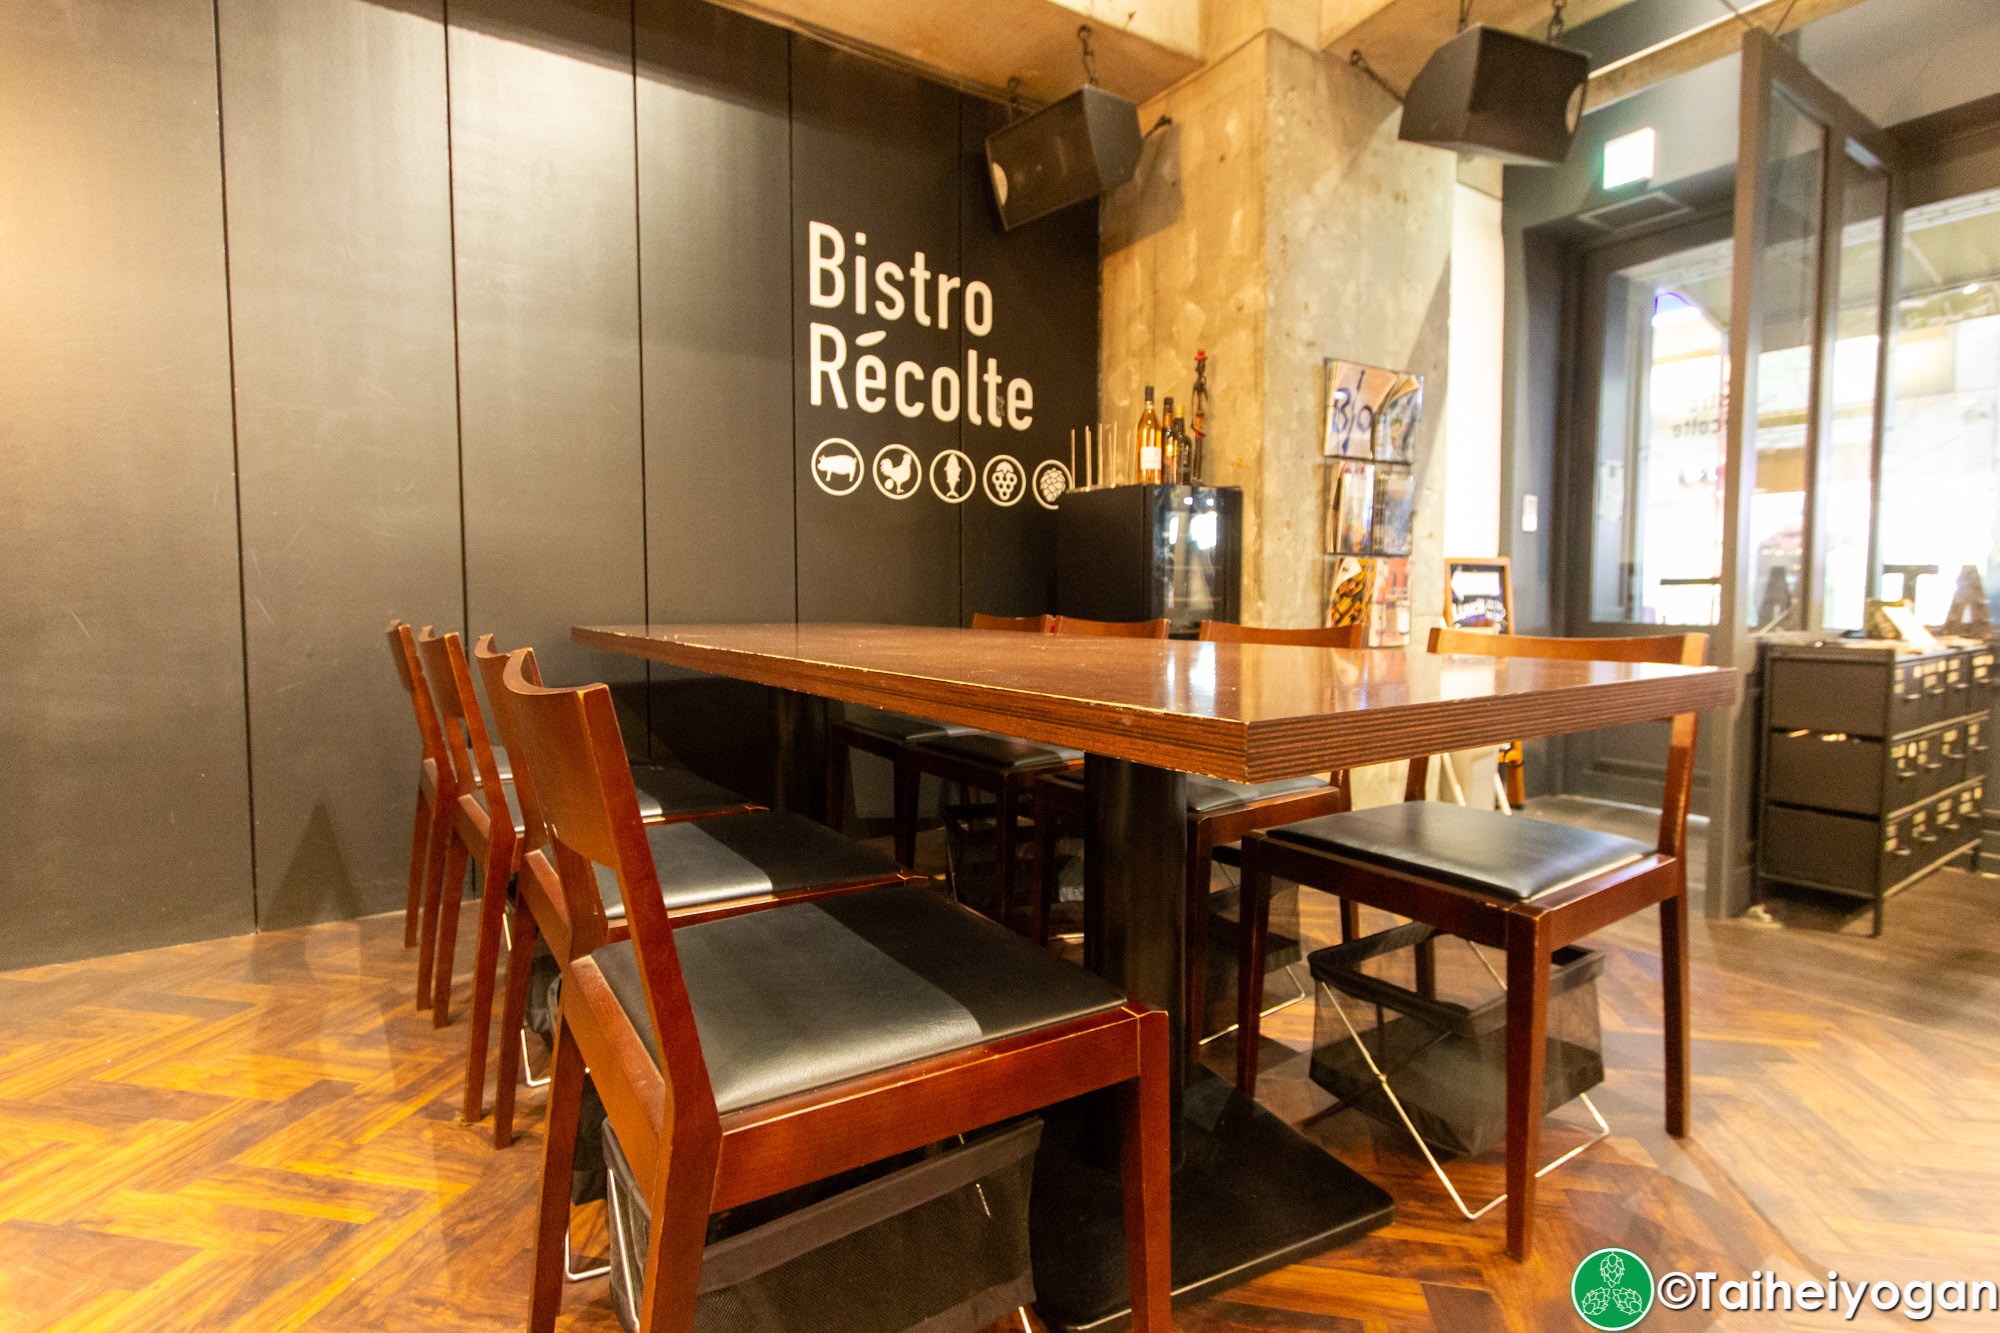 Bistro Recolte - Interior - Table Seating